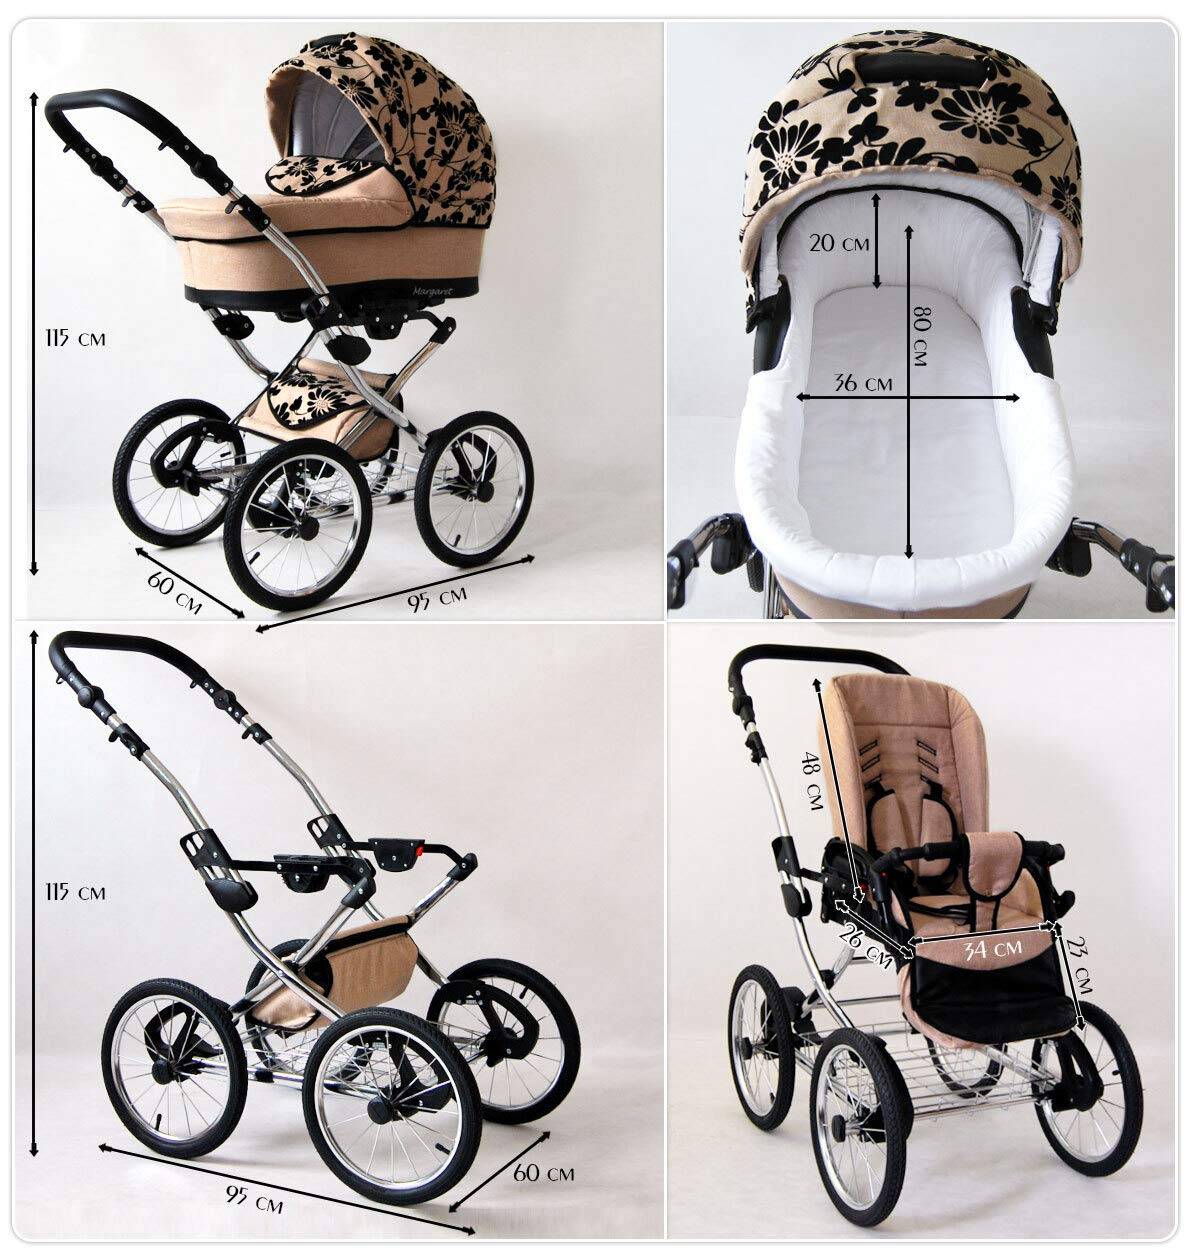 Travel System Retro Stroller Pram 2in1 3in1 Set Isofix Nostalgica by SaintBaby Navy Blue Star 2in1 Without Baby seat SaintBaby 3in1 or 2in1 Selectable. At 3in1 you will also receive the car seat (baby seat). Of course you get the baby tub (classic pram) as well as the buggy attachment (sports seat) no matter if 2in1 or 3in1. The car naturally complies with the EU safety standard EN1888. During production and before shipment, each wagon is carefully inspected so that you can be sure you have one of the best wagons. Saintbaby stands for all-in-one carefree packages, so you will also receive a diaper bag in the same colour as the car as well as rain and insect protection free of charge. With all the colours of this pram you will find the pram of your dreams. 8